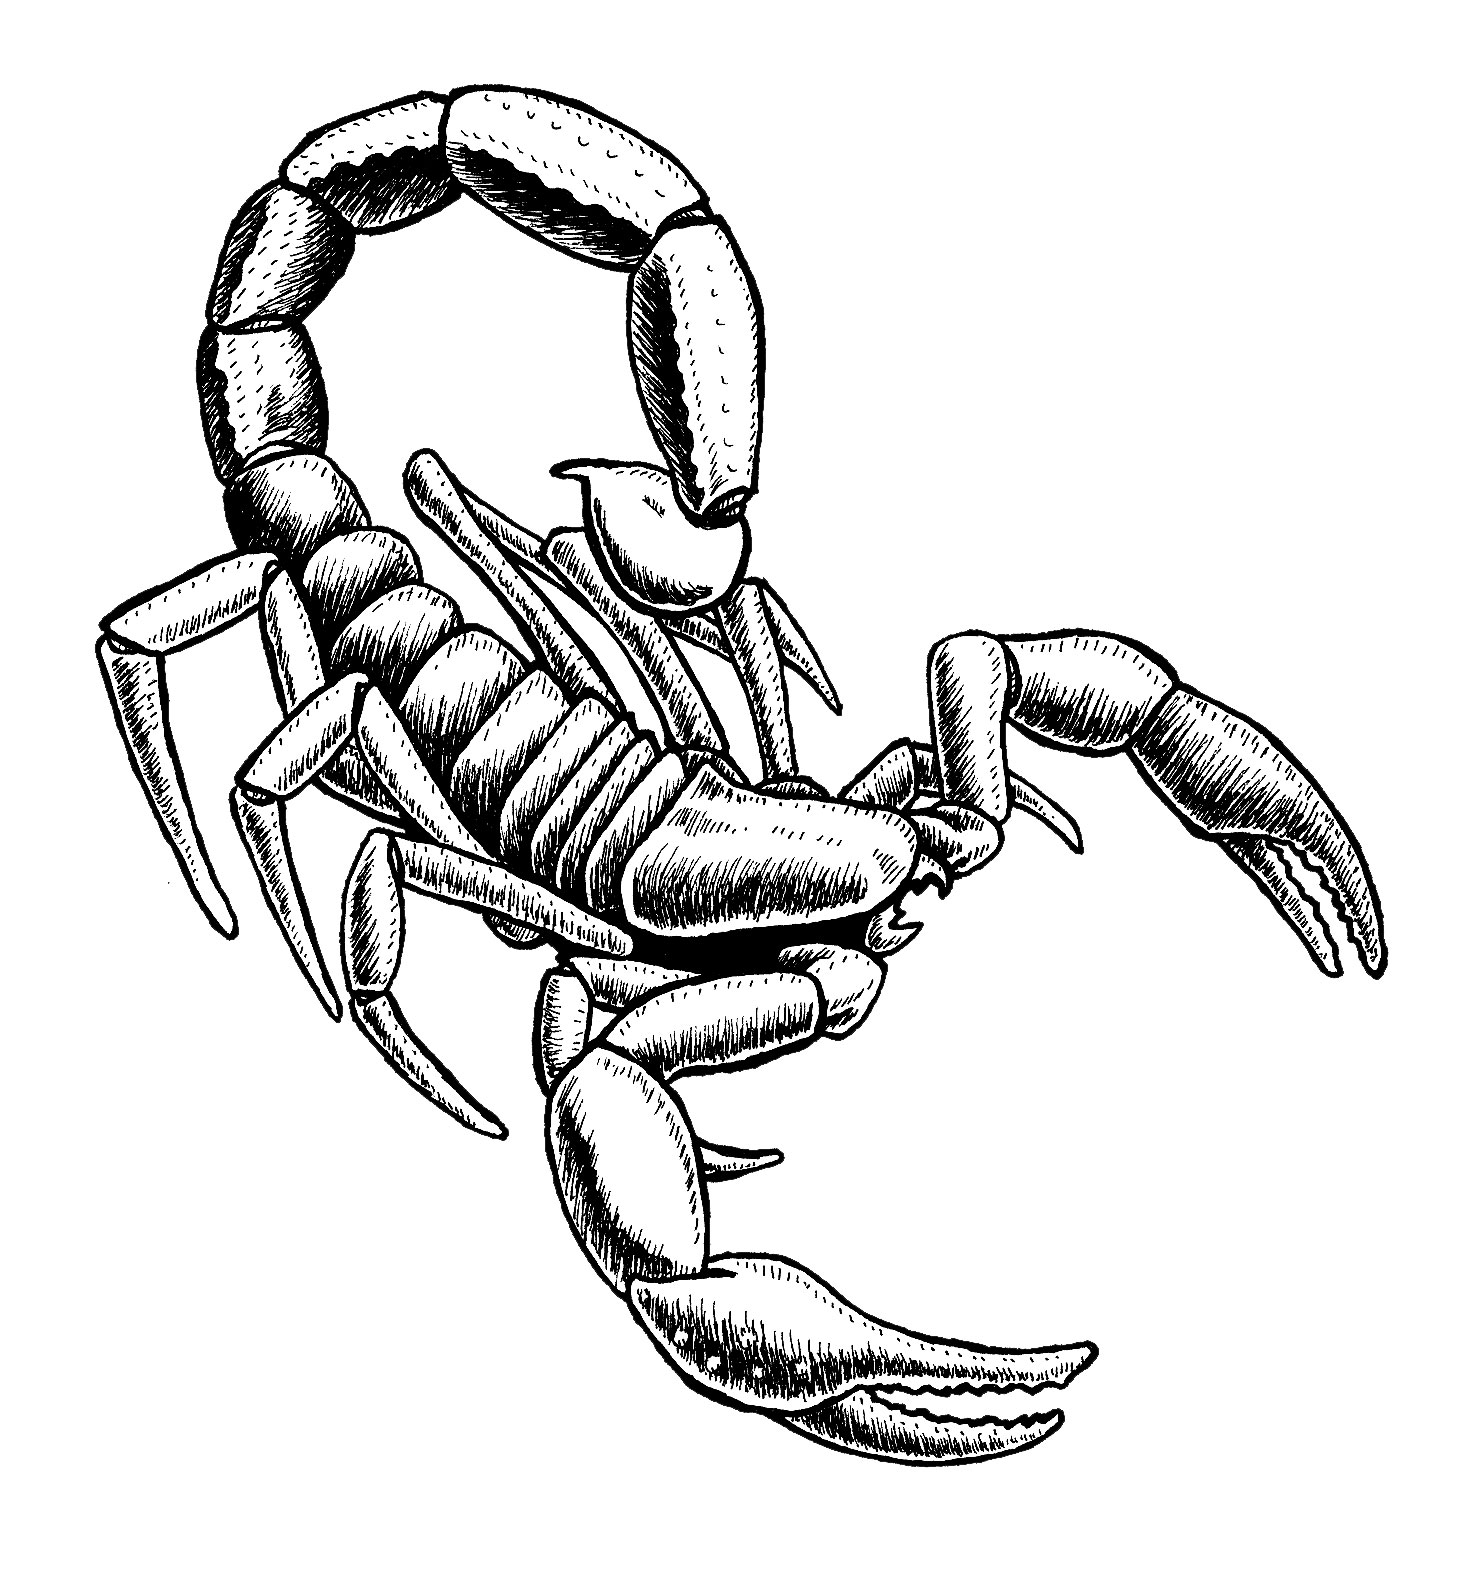 Easy Scorpion Drawing